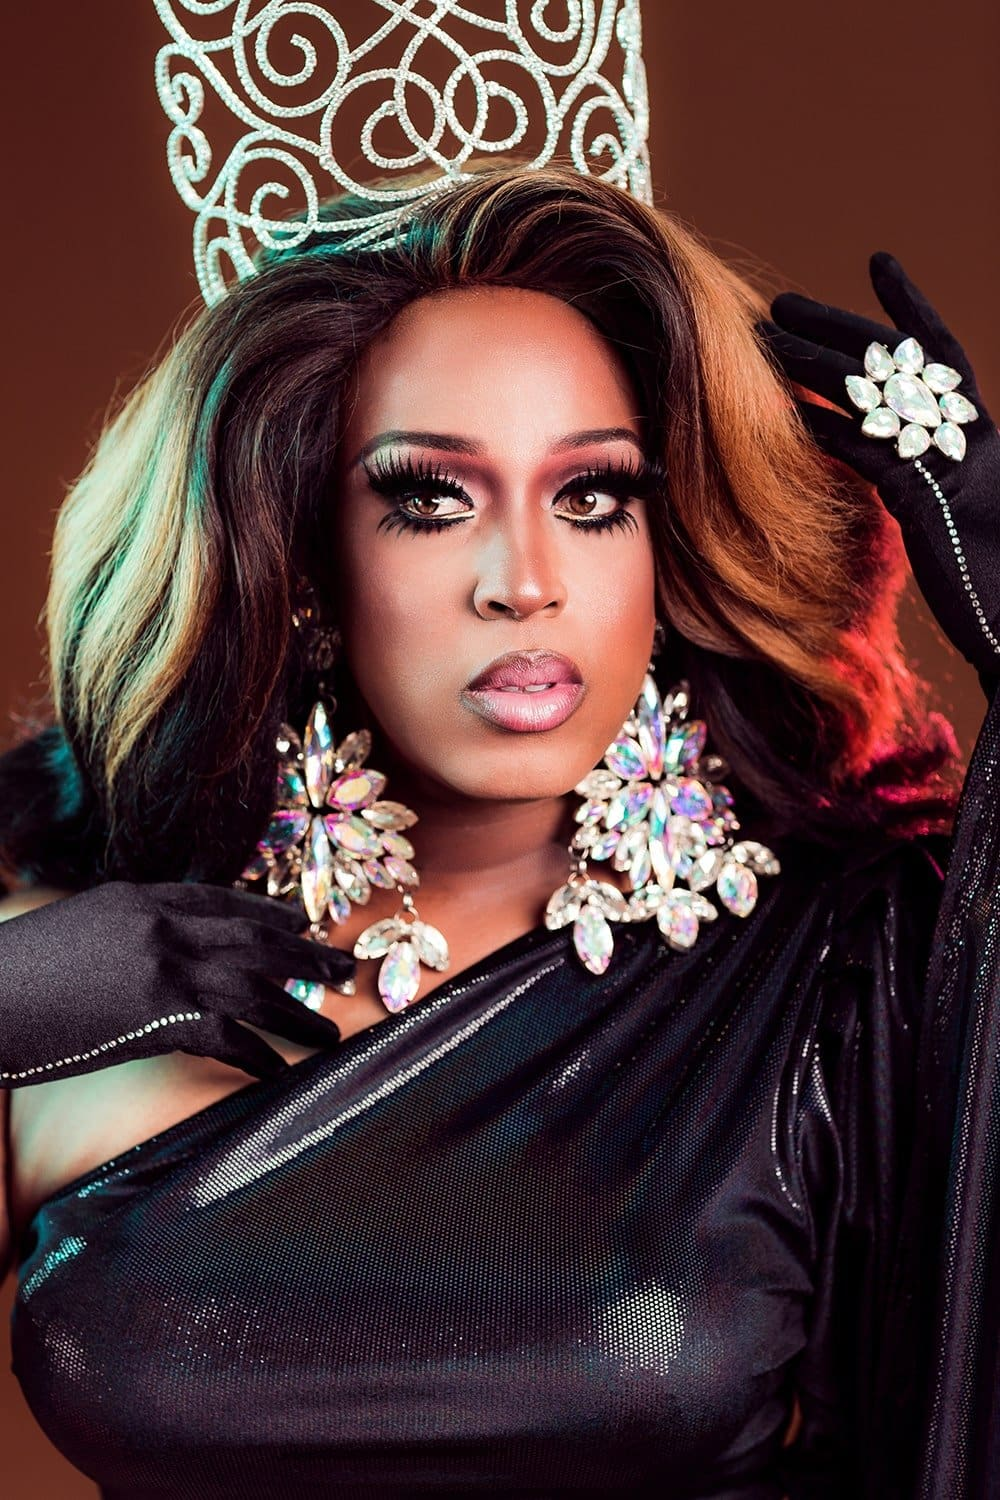 kenya black drag queen tampa pageant winner lgbt